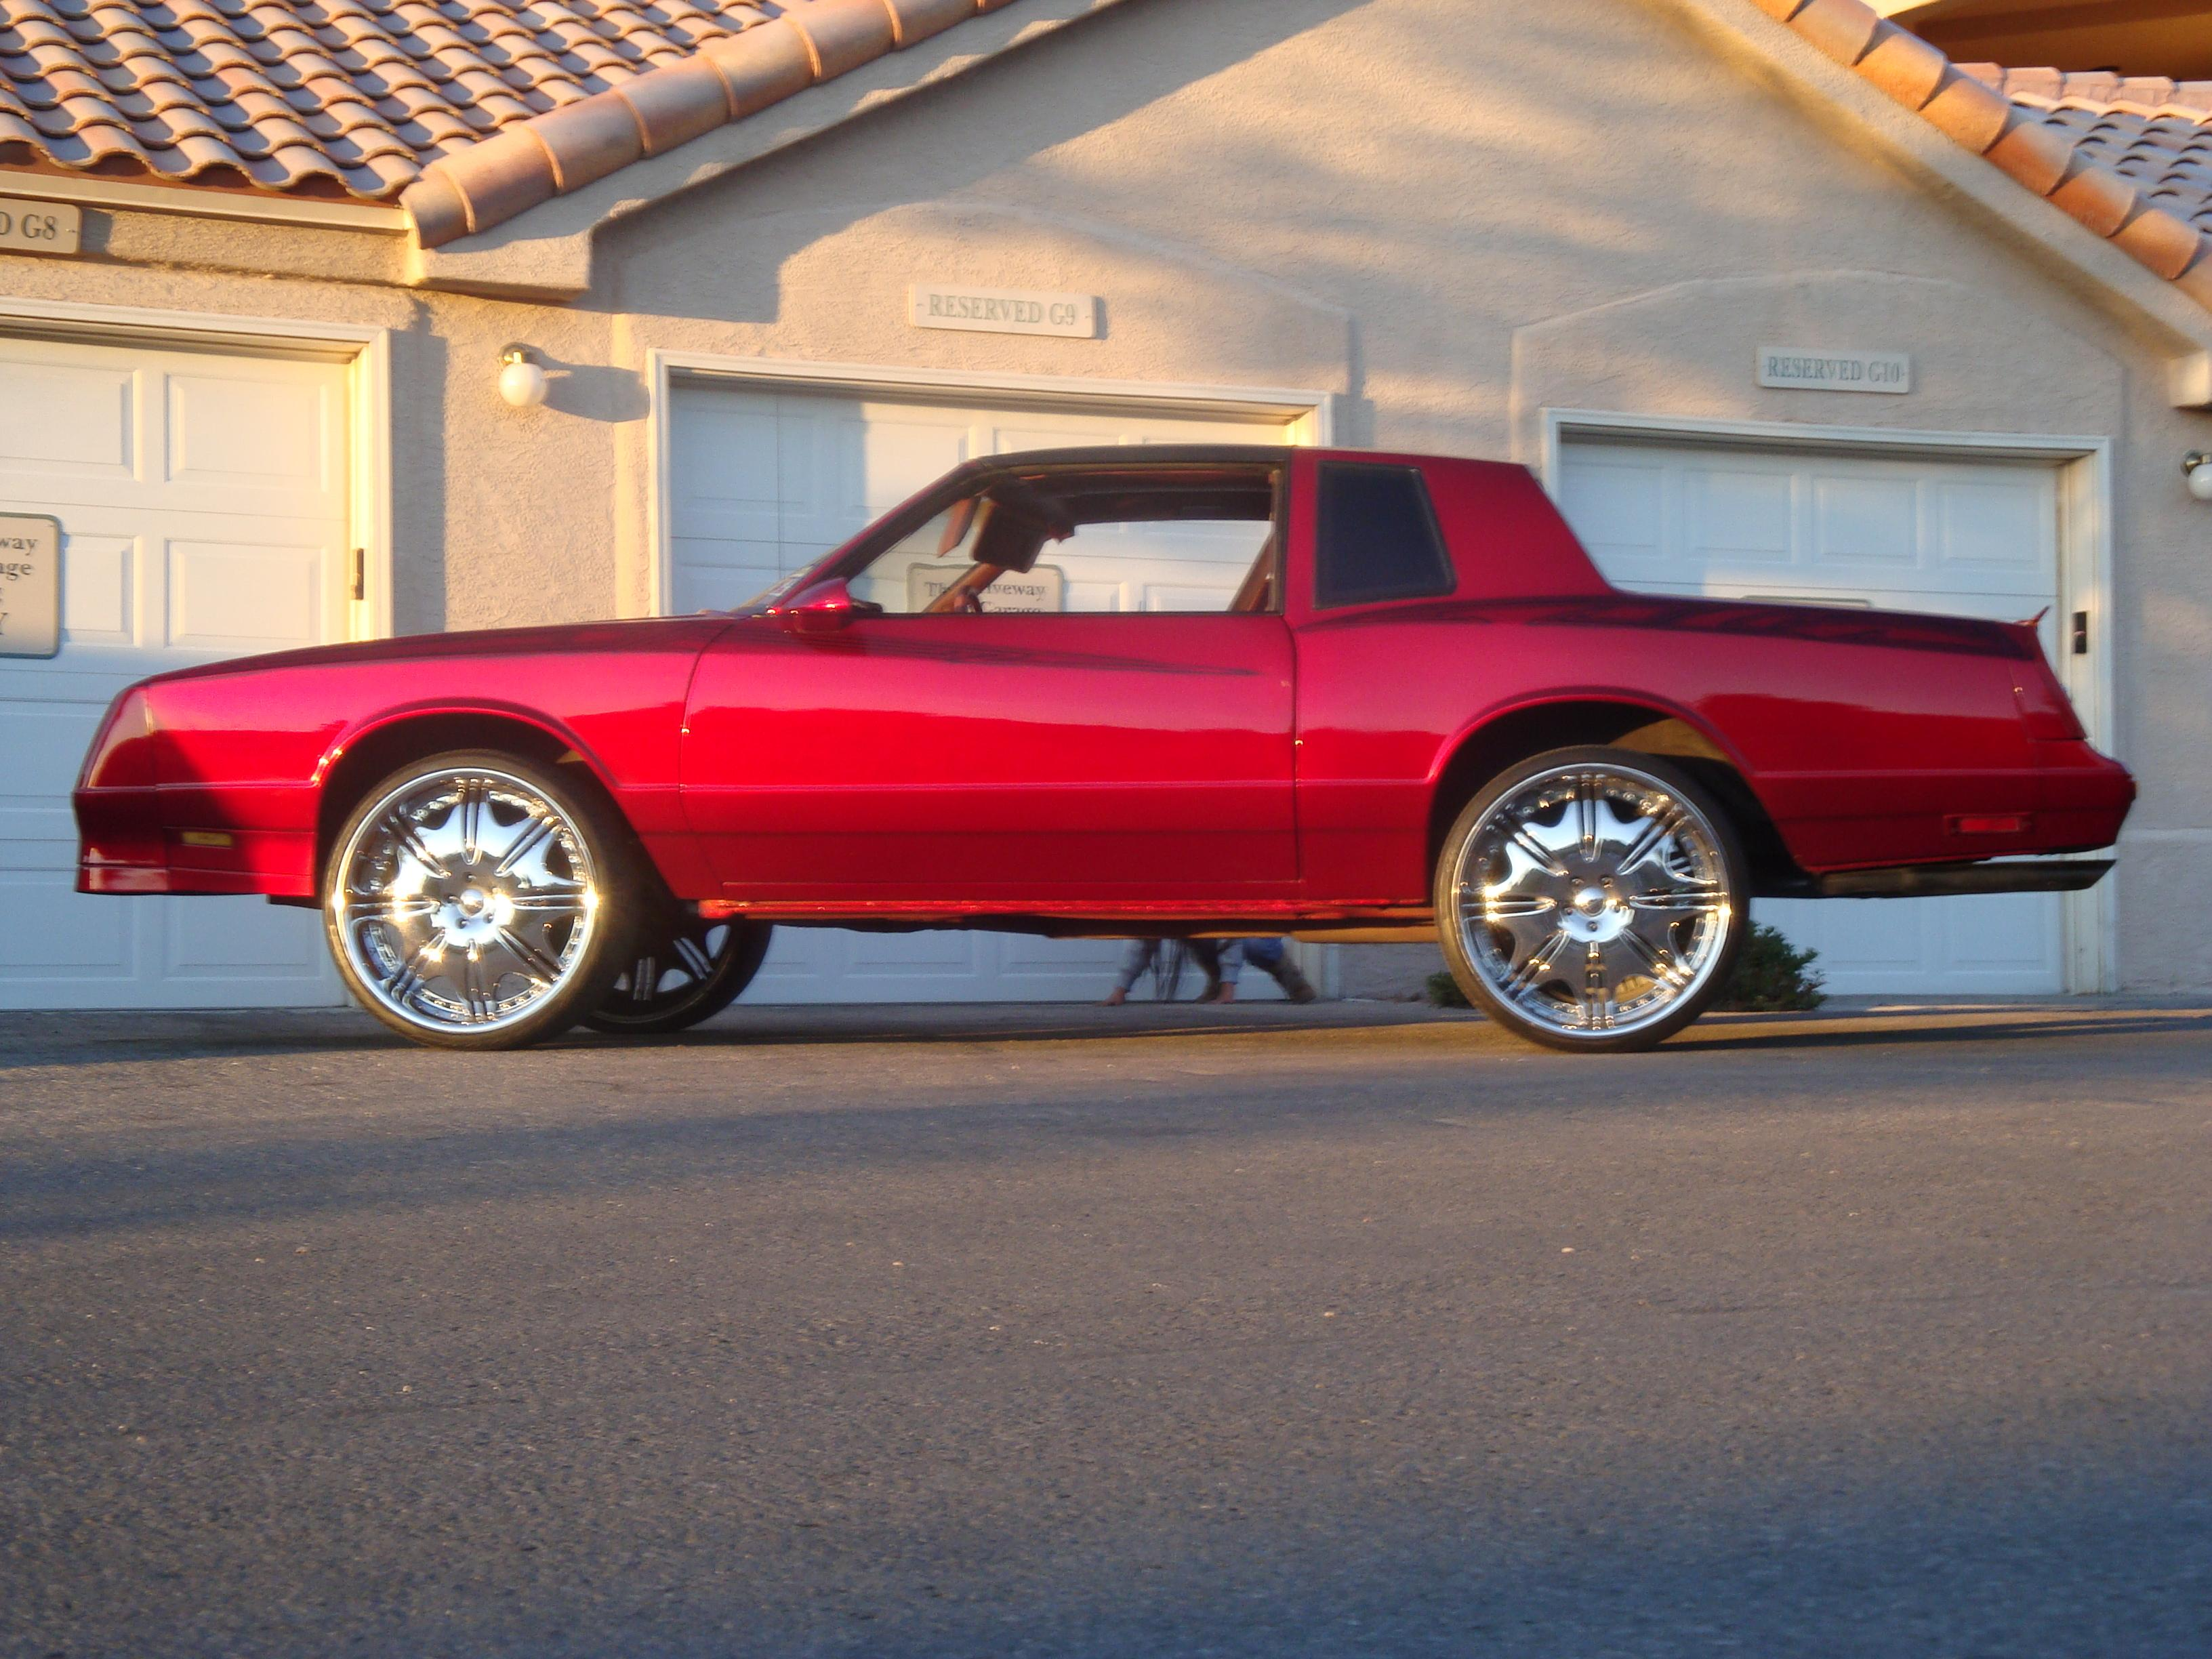 Mr.28s's 1987 Chevrolet Monte Carlo